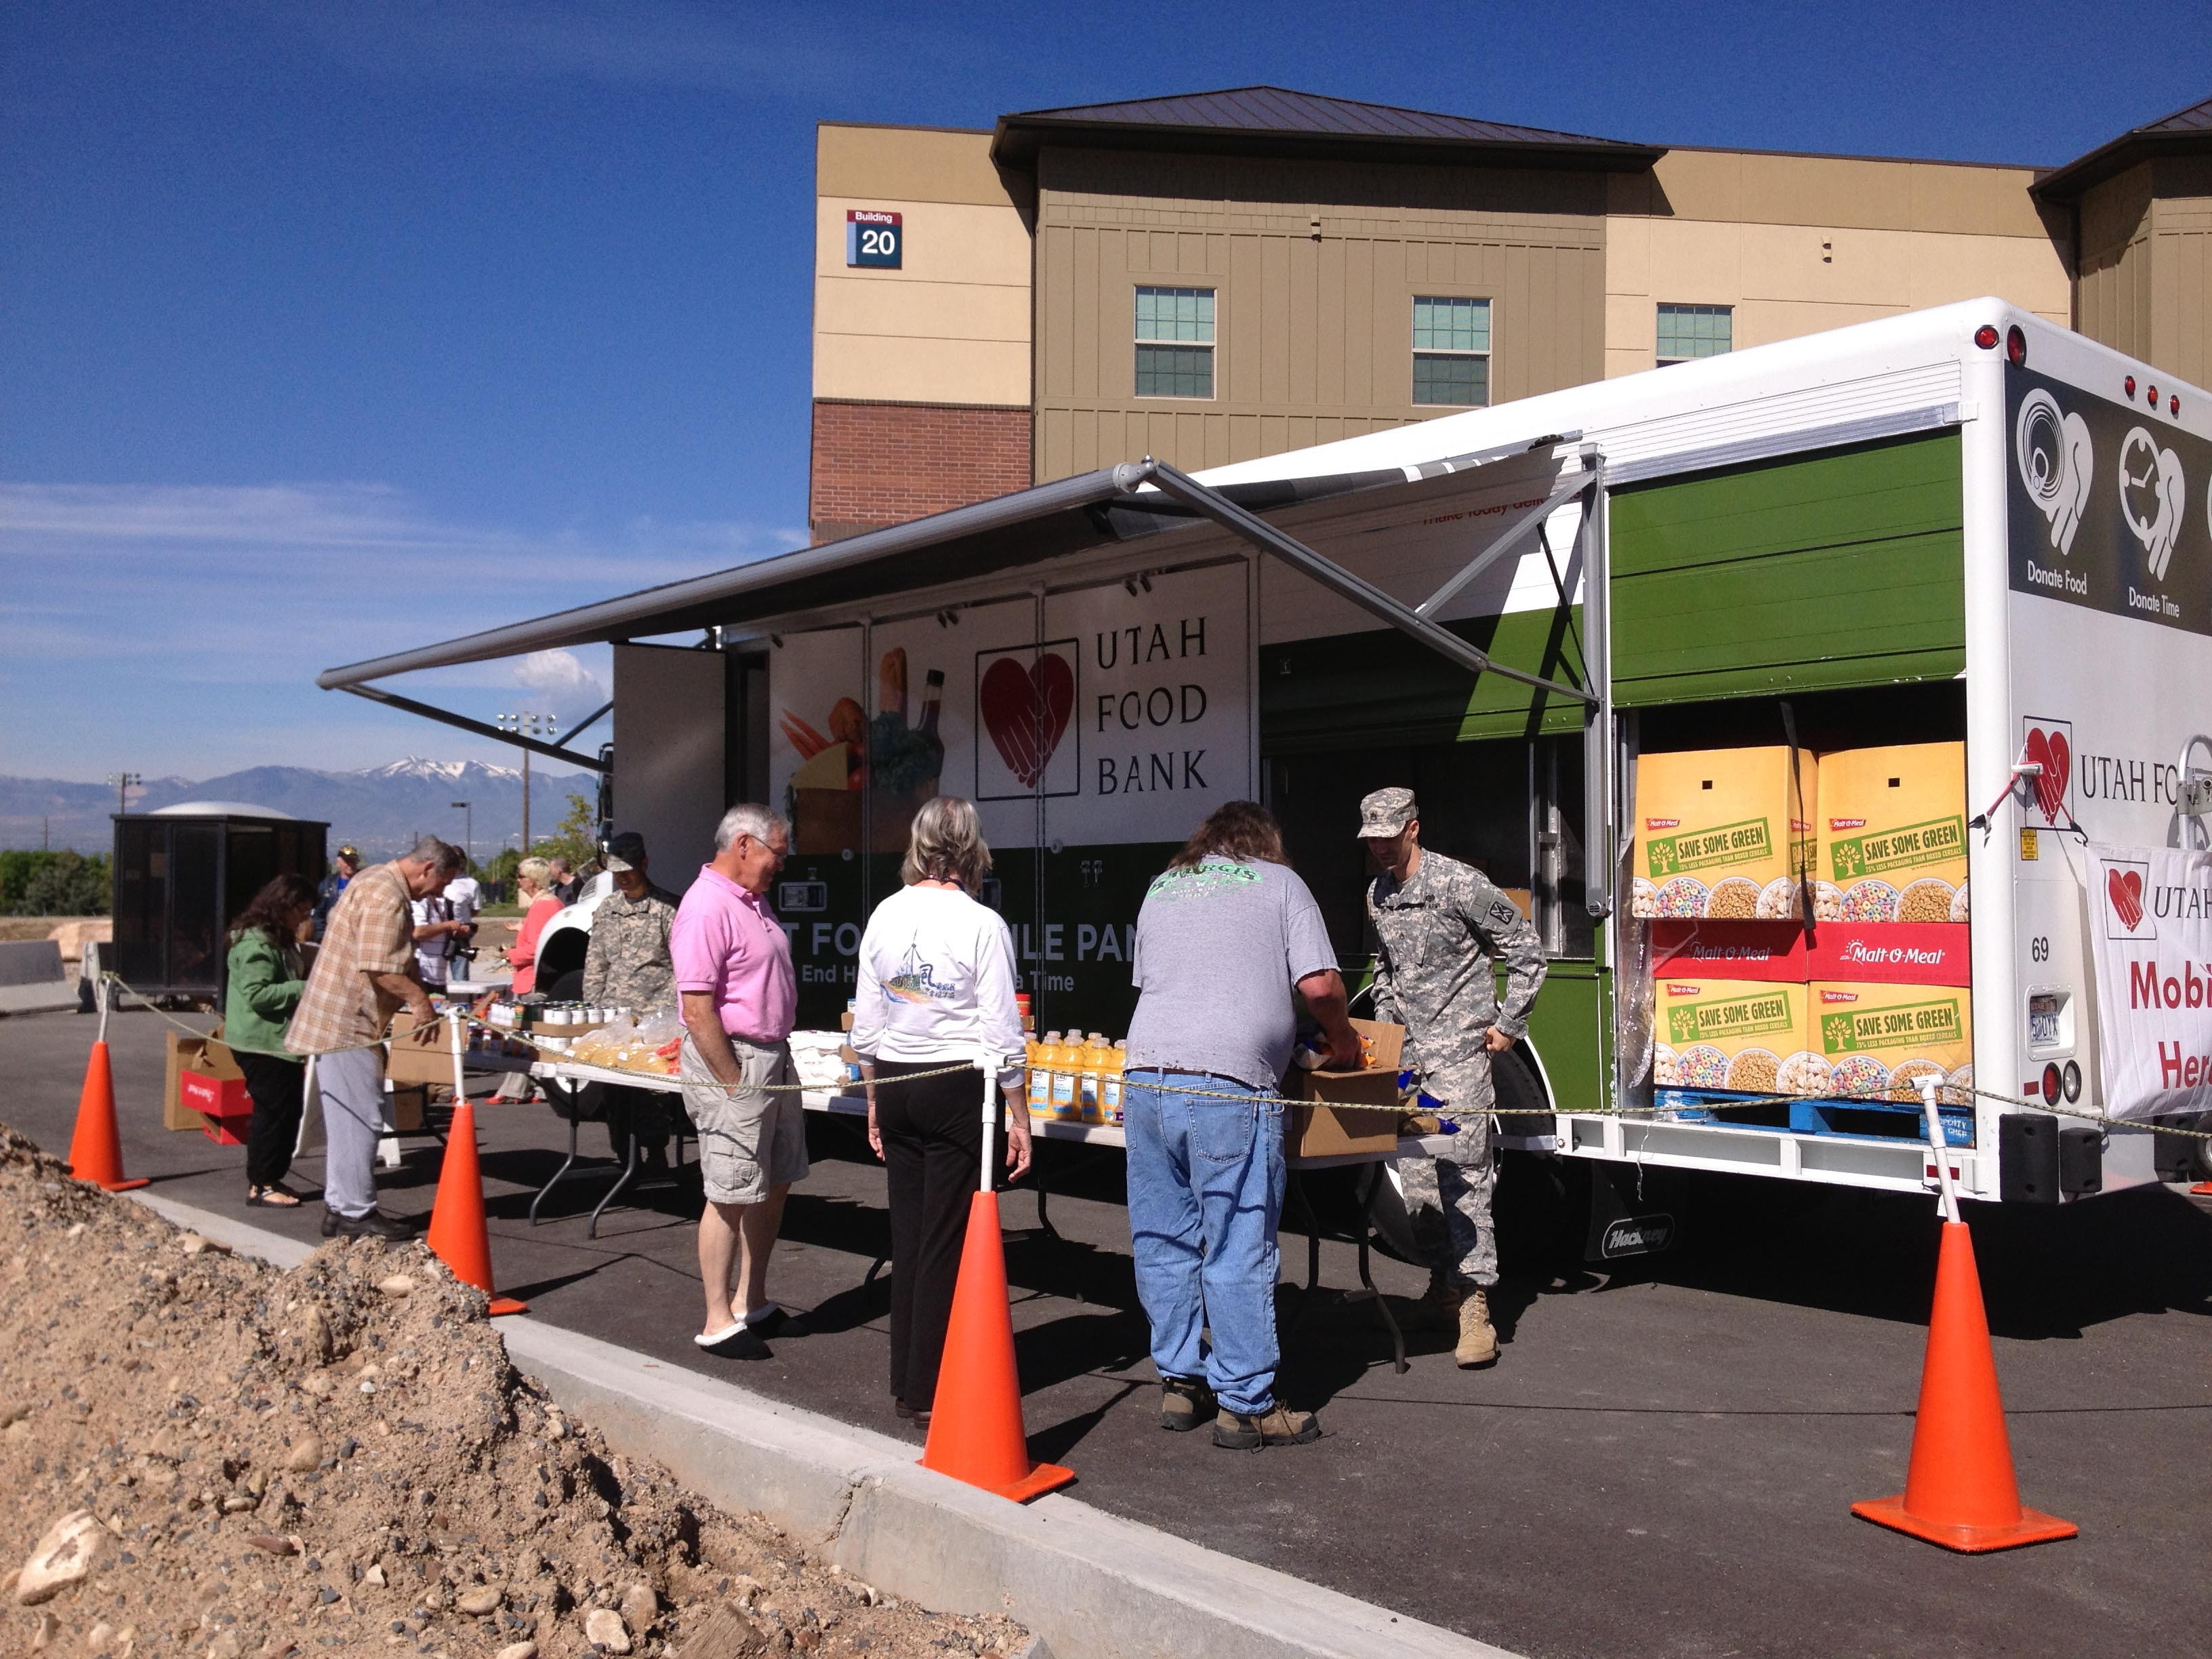 Mobile Pantry Utah Food Bank